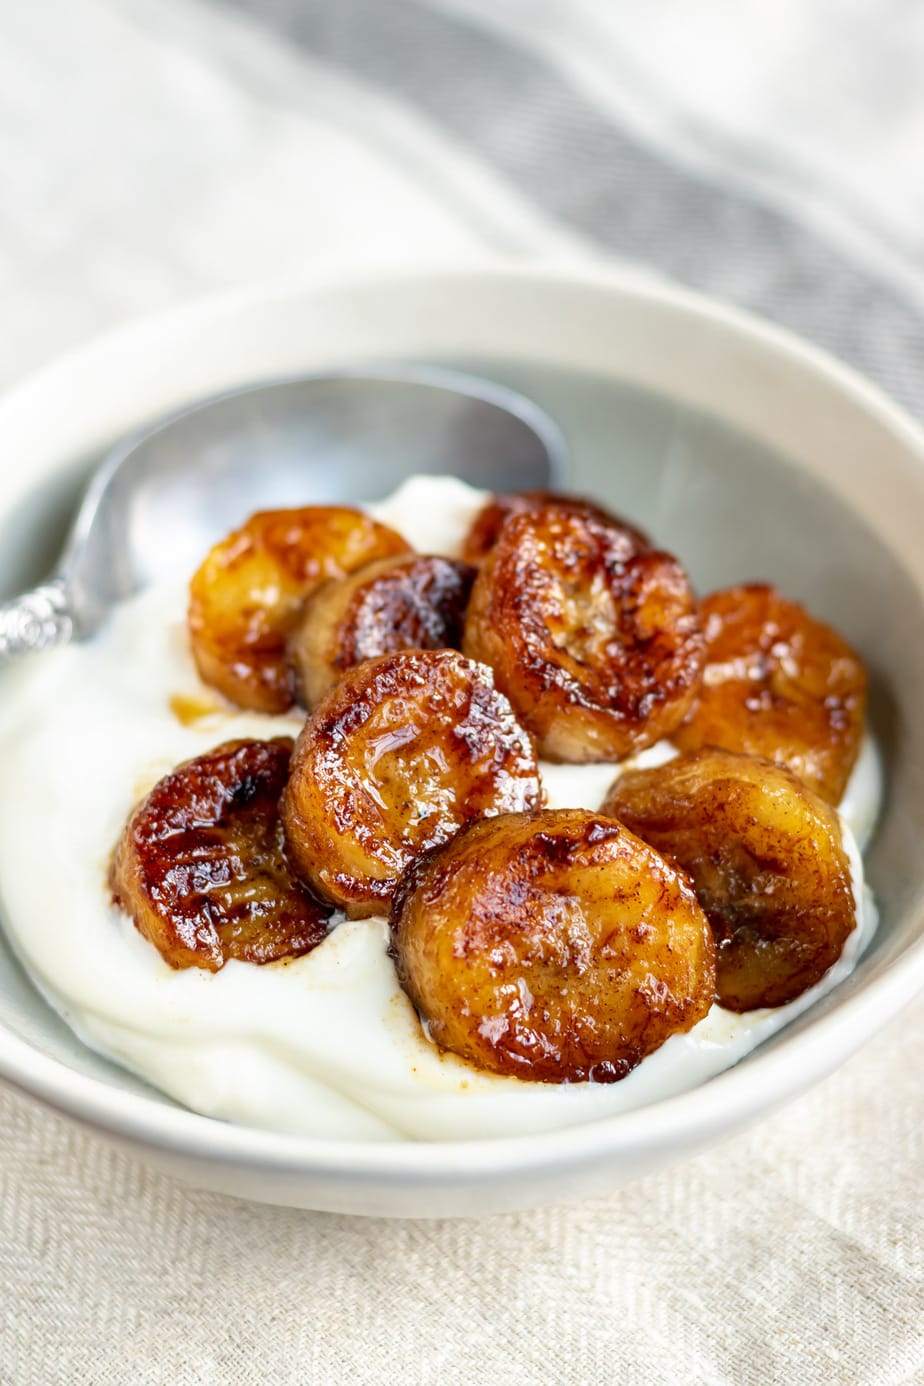 Bowl of yogurt topped with banana slices that have been fried in maple syrup.